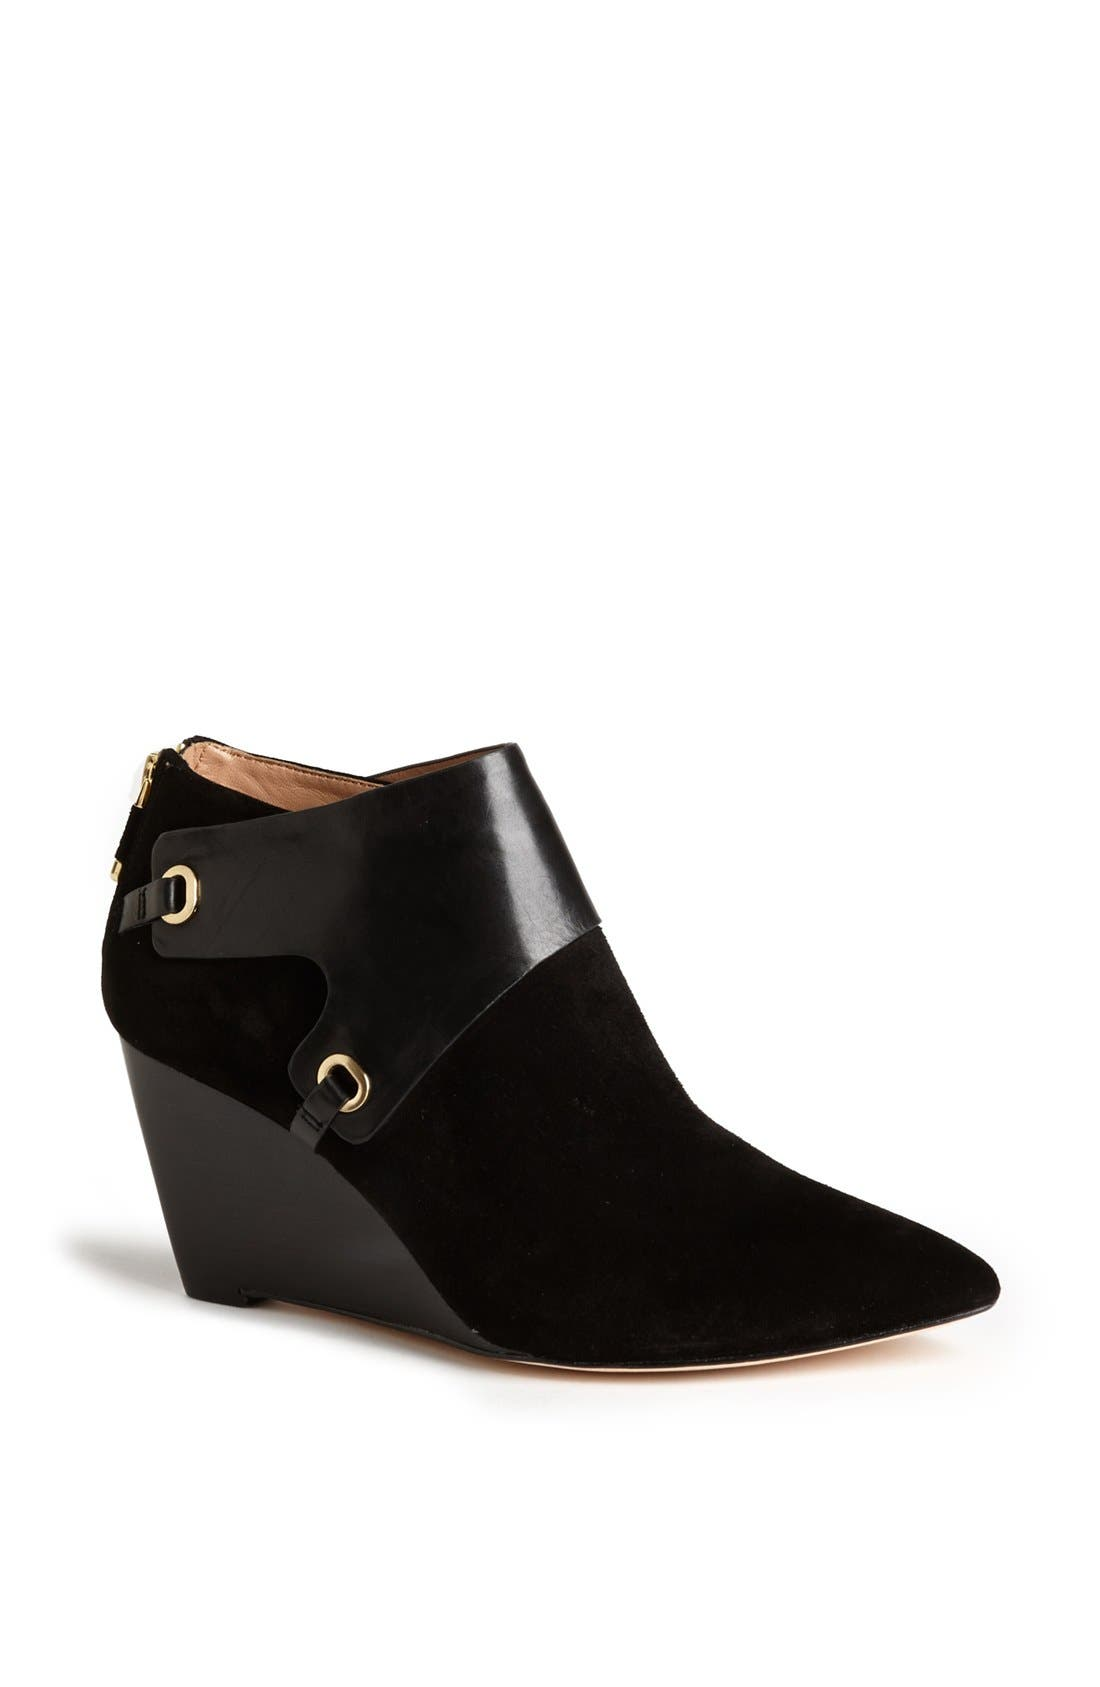 Main Image - VC Signature 'Mallorie' Leather Wedge Bootie